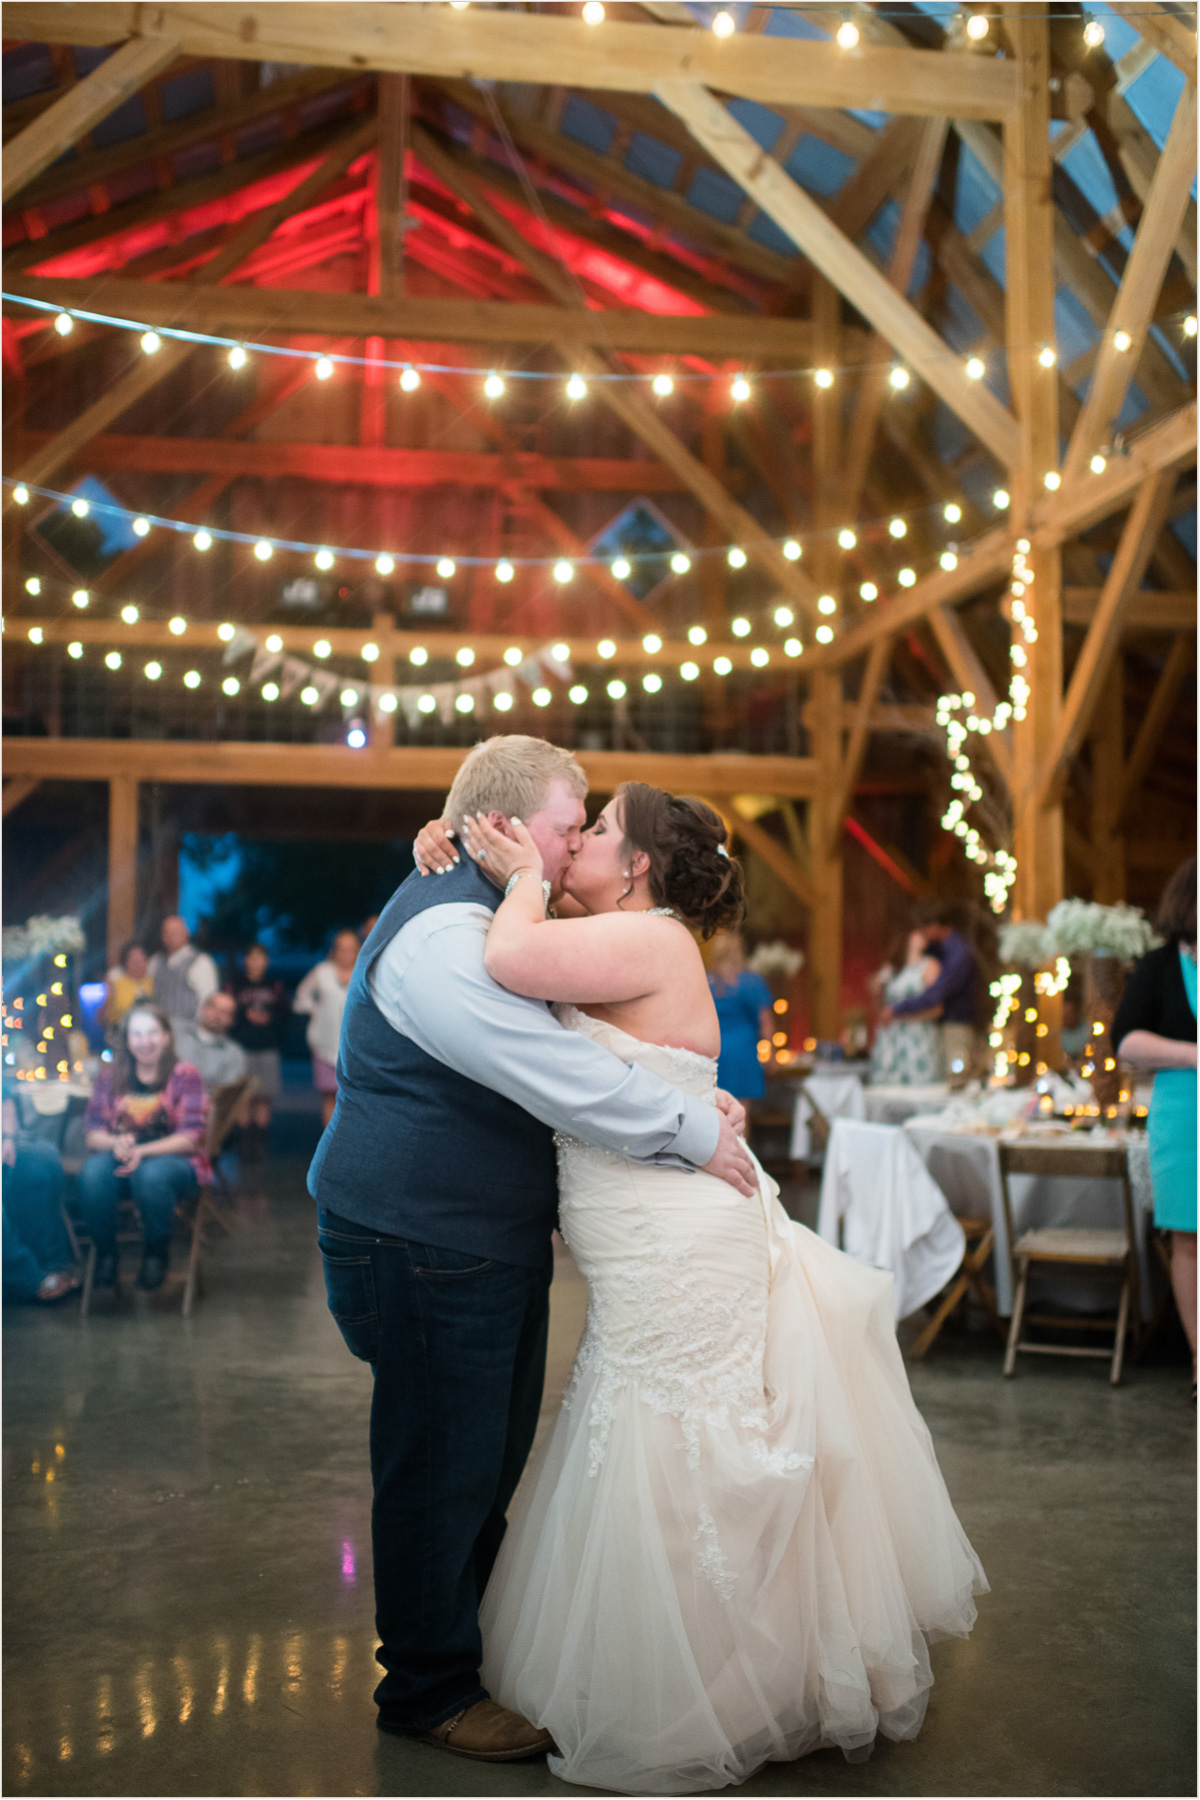 The Barn at Schwinn Produce Farm Wedding Lit Up at Night